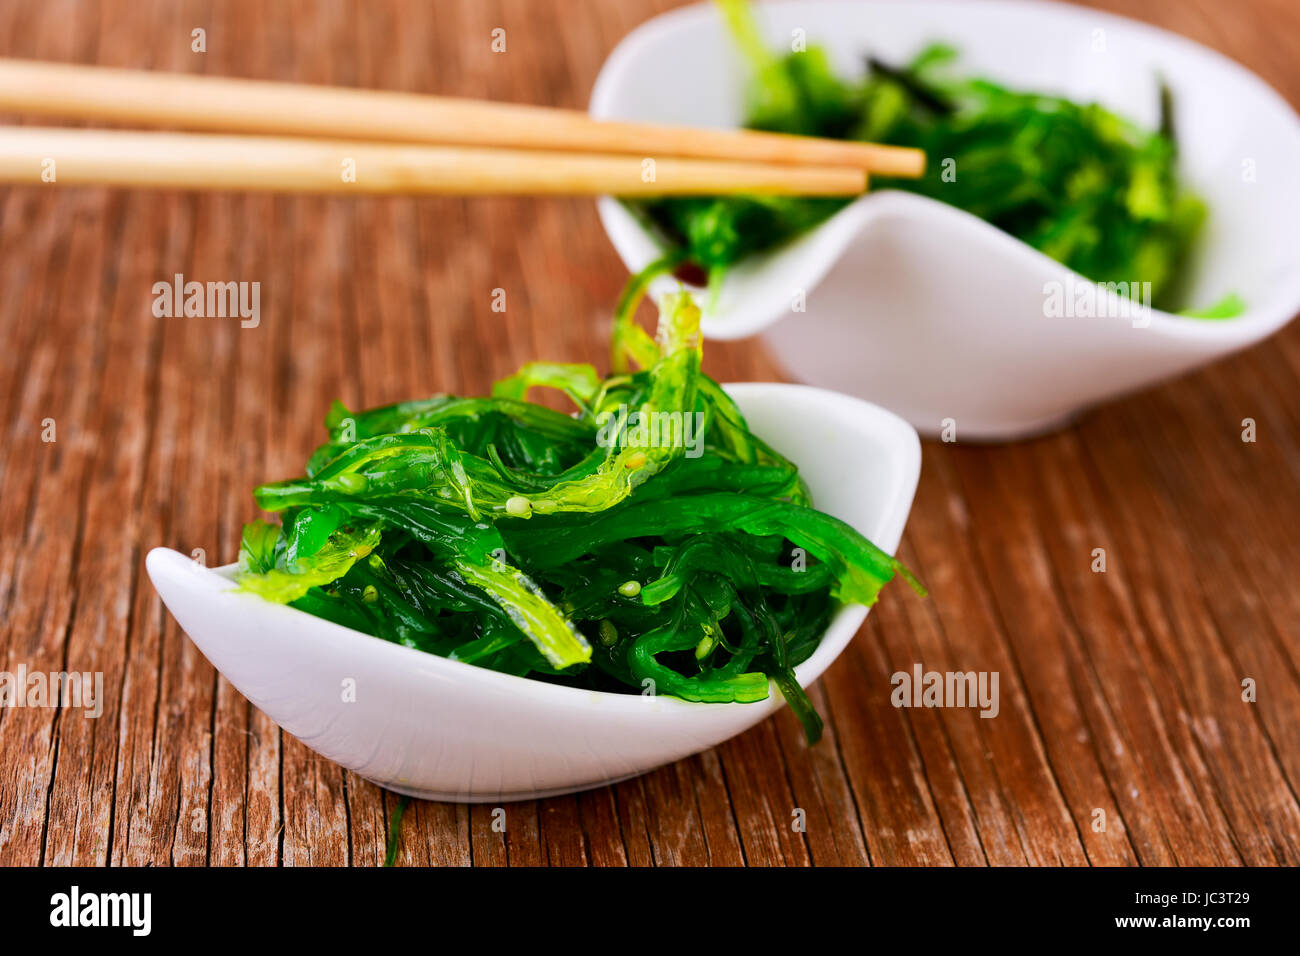 goma wakame or seaweed salad in some white ceramic bowls, on a rustic wooden table - Stock Image